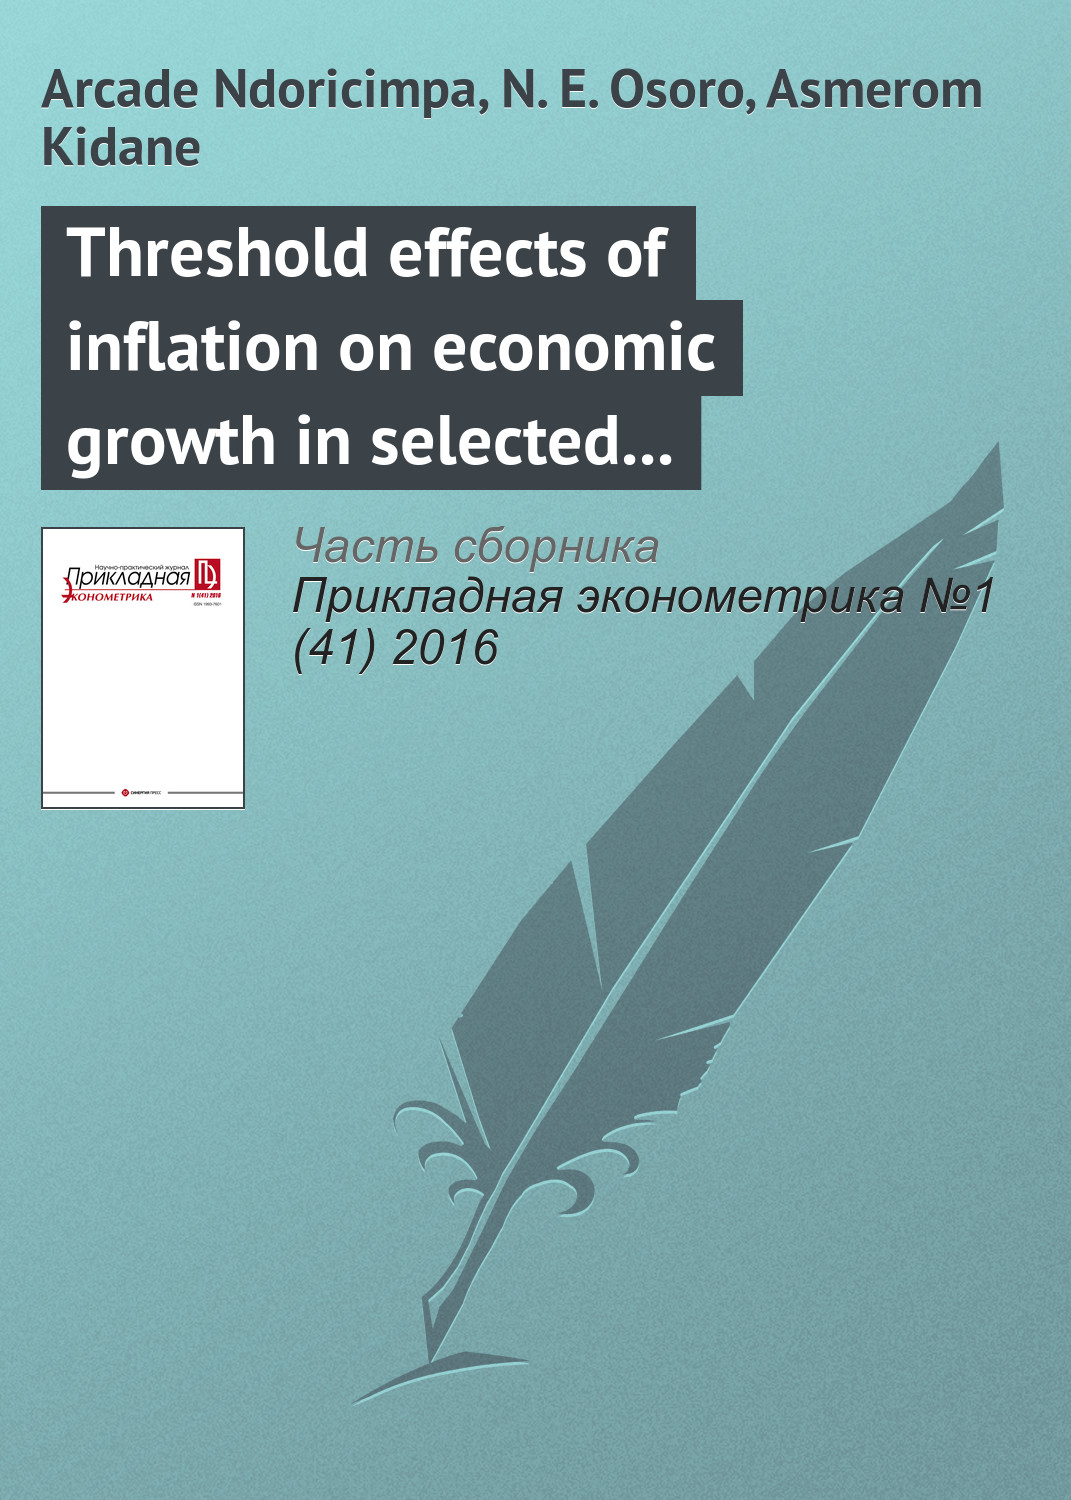 Arcade Ndoricimpa Threshold effects of inflation on economic growth in selected African regional economic communities: Evidence from a dynamic panel threshold modeling brother tn241y yellow тонер картридж для brother hl 3140cw hl 3170cdw dcp 9020cdw mfc 9330cdw